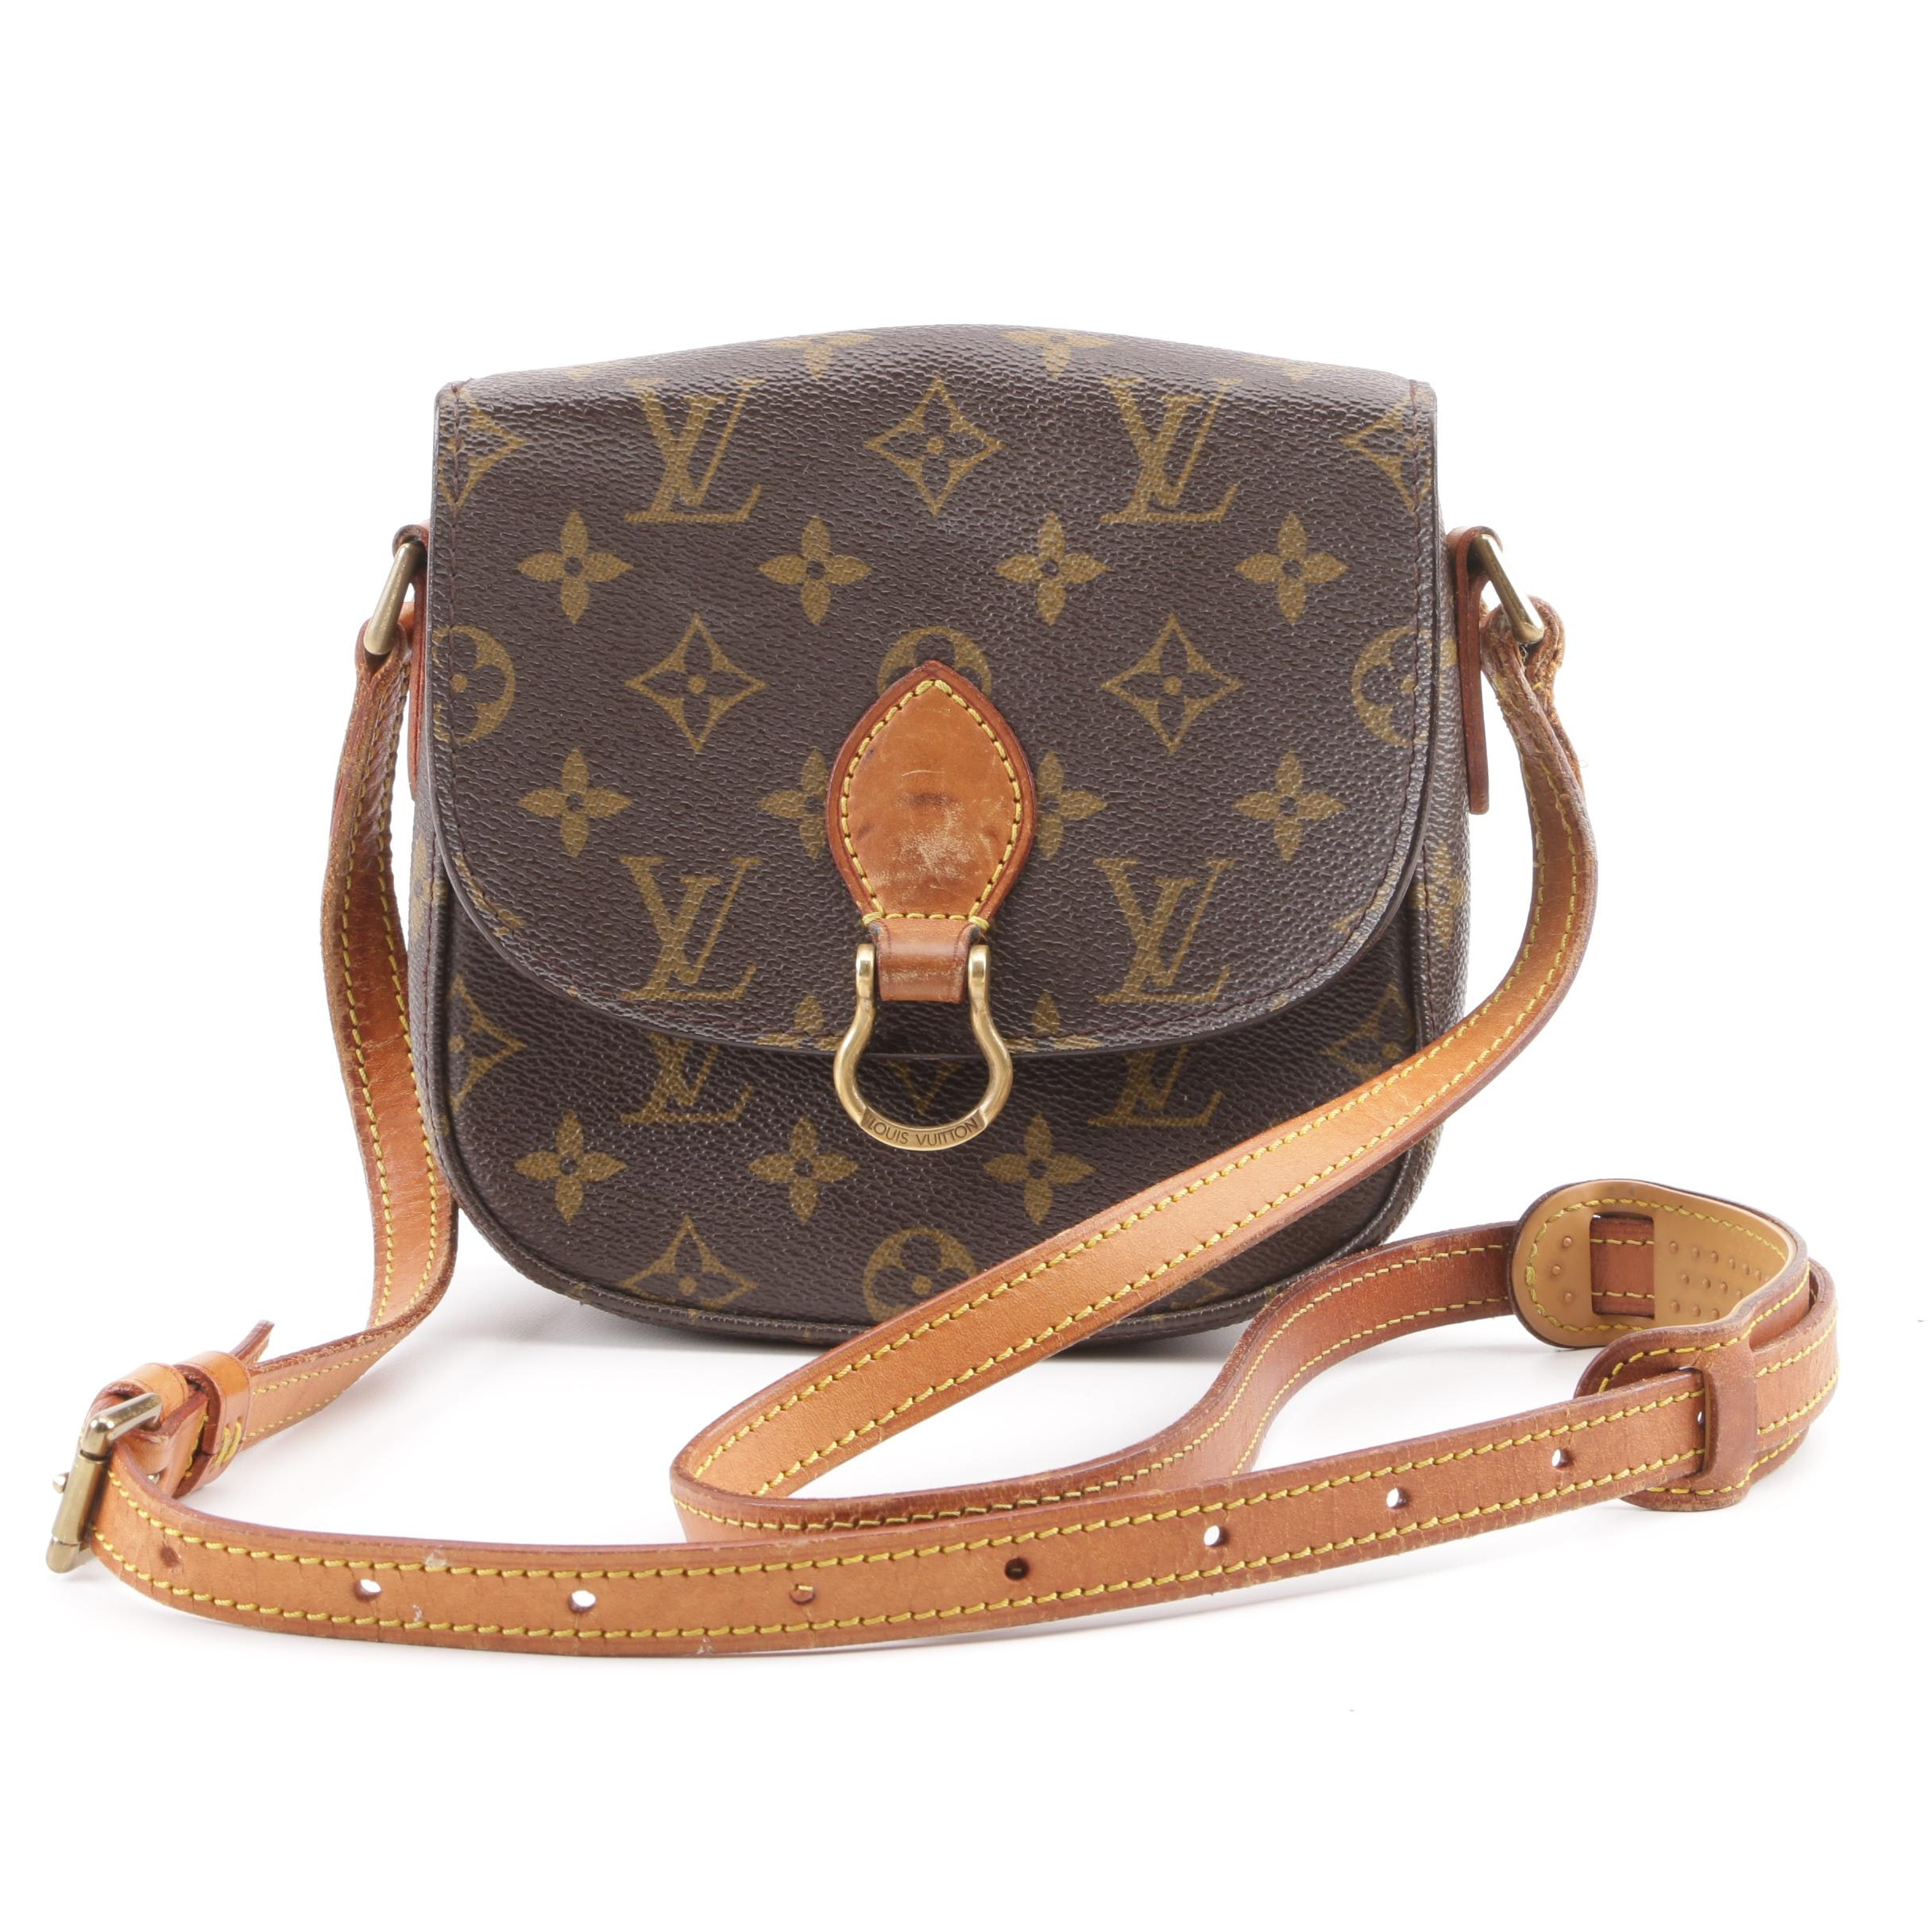 1988 Vintage Louis Vuitton Paris Monogram Canvas Saint Cloud PM Crossbody Bag